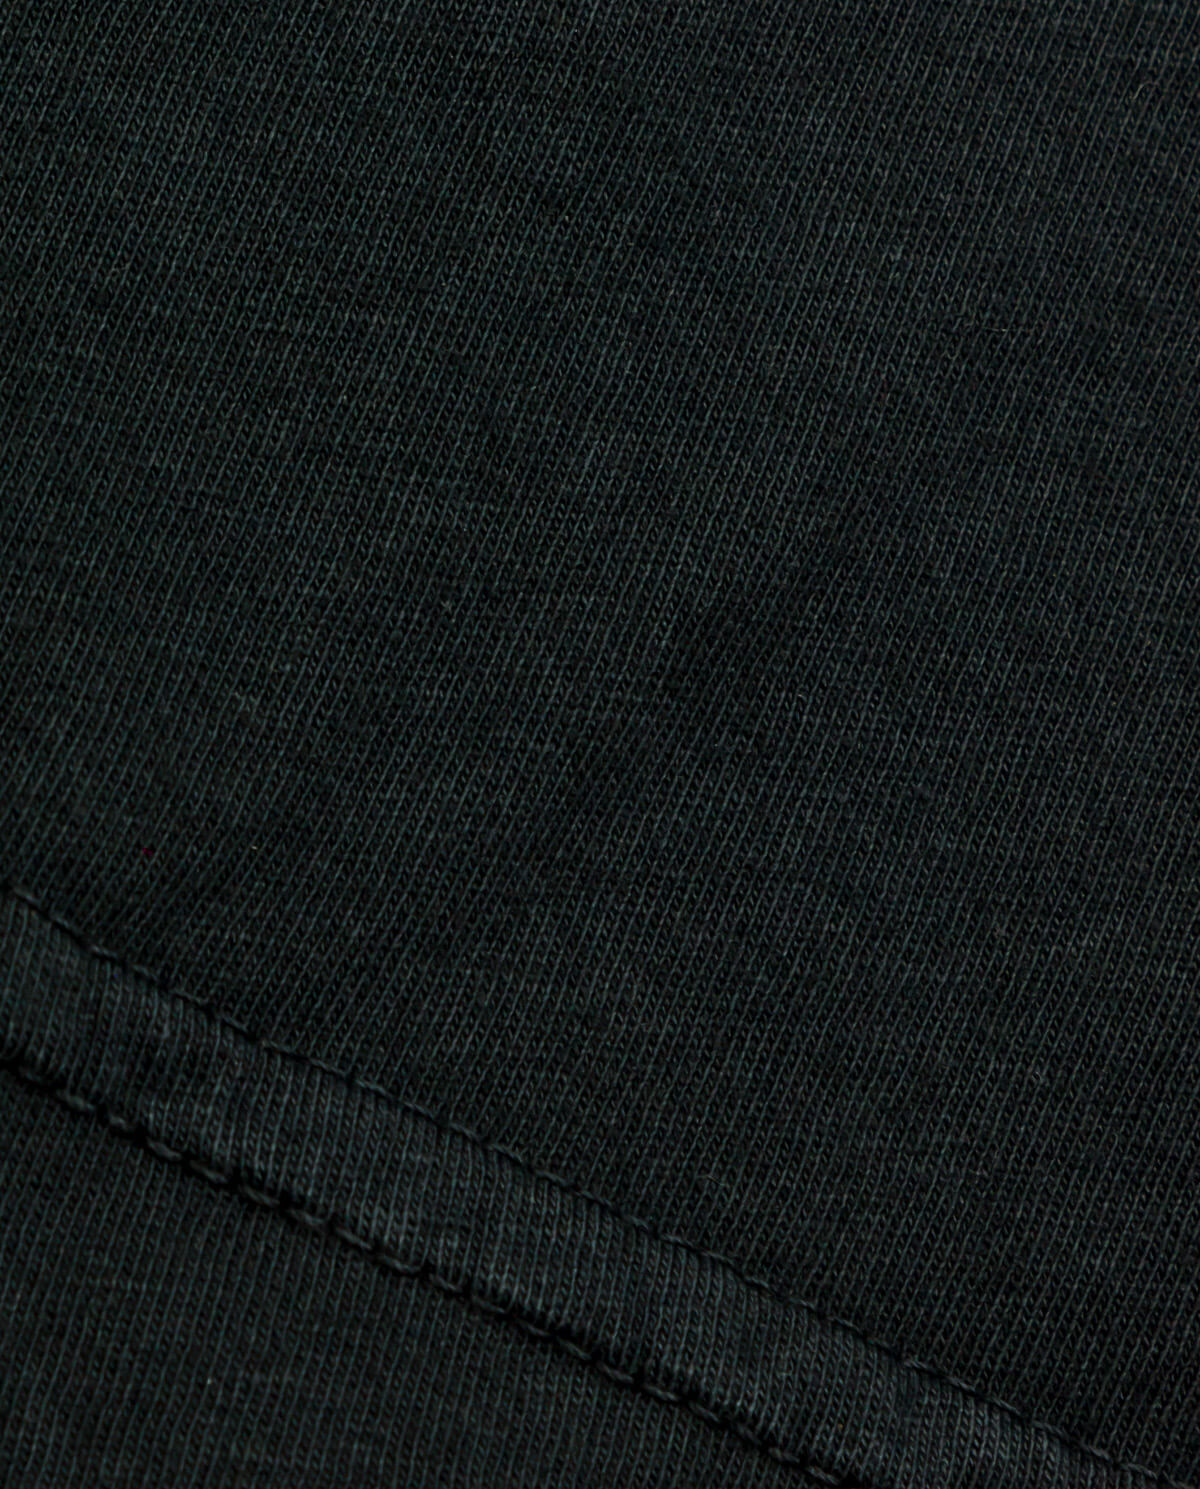 Ahnako Basic Tee Shirt - Vintage Black - Fabric Close Up